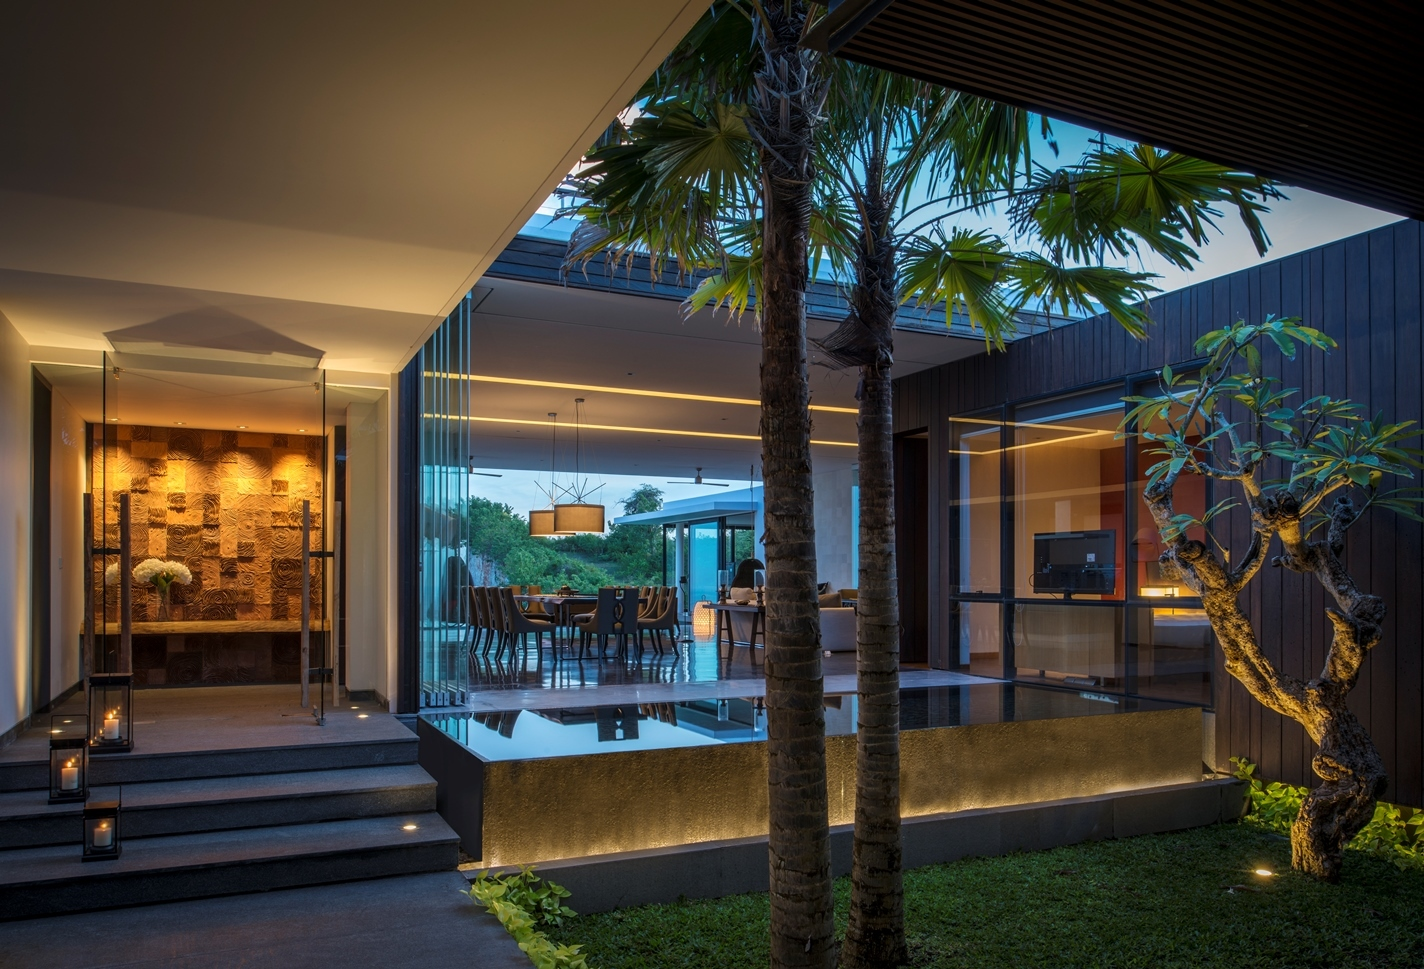 modern tropical home with interior courtyard - Bali Home Designs